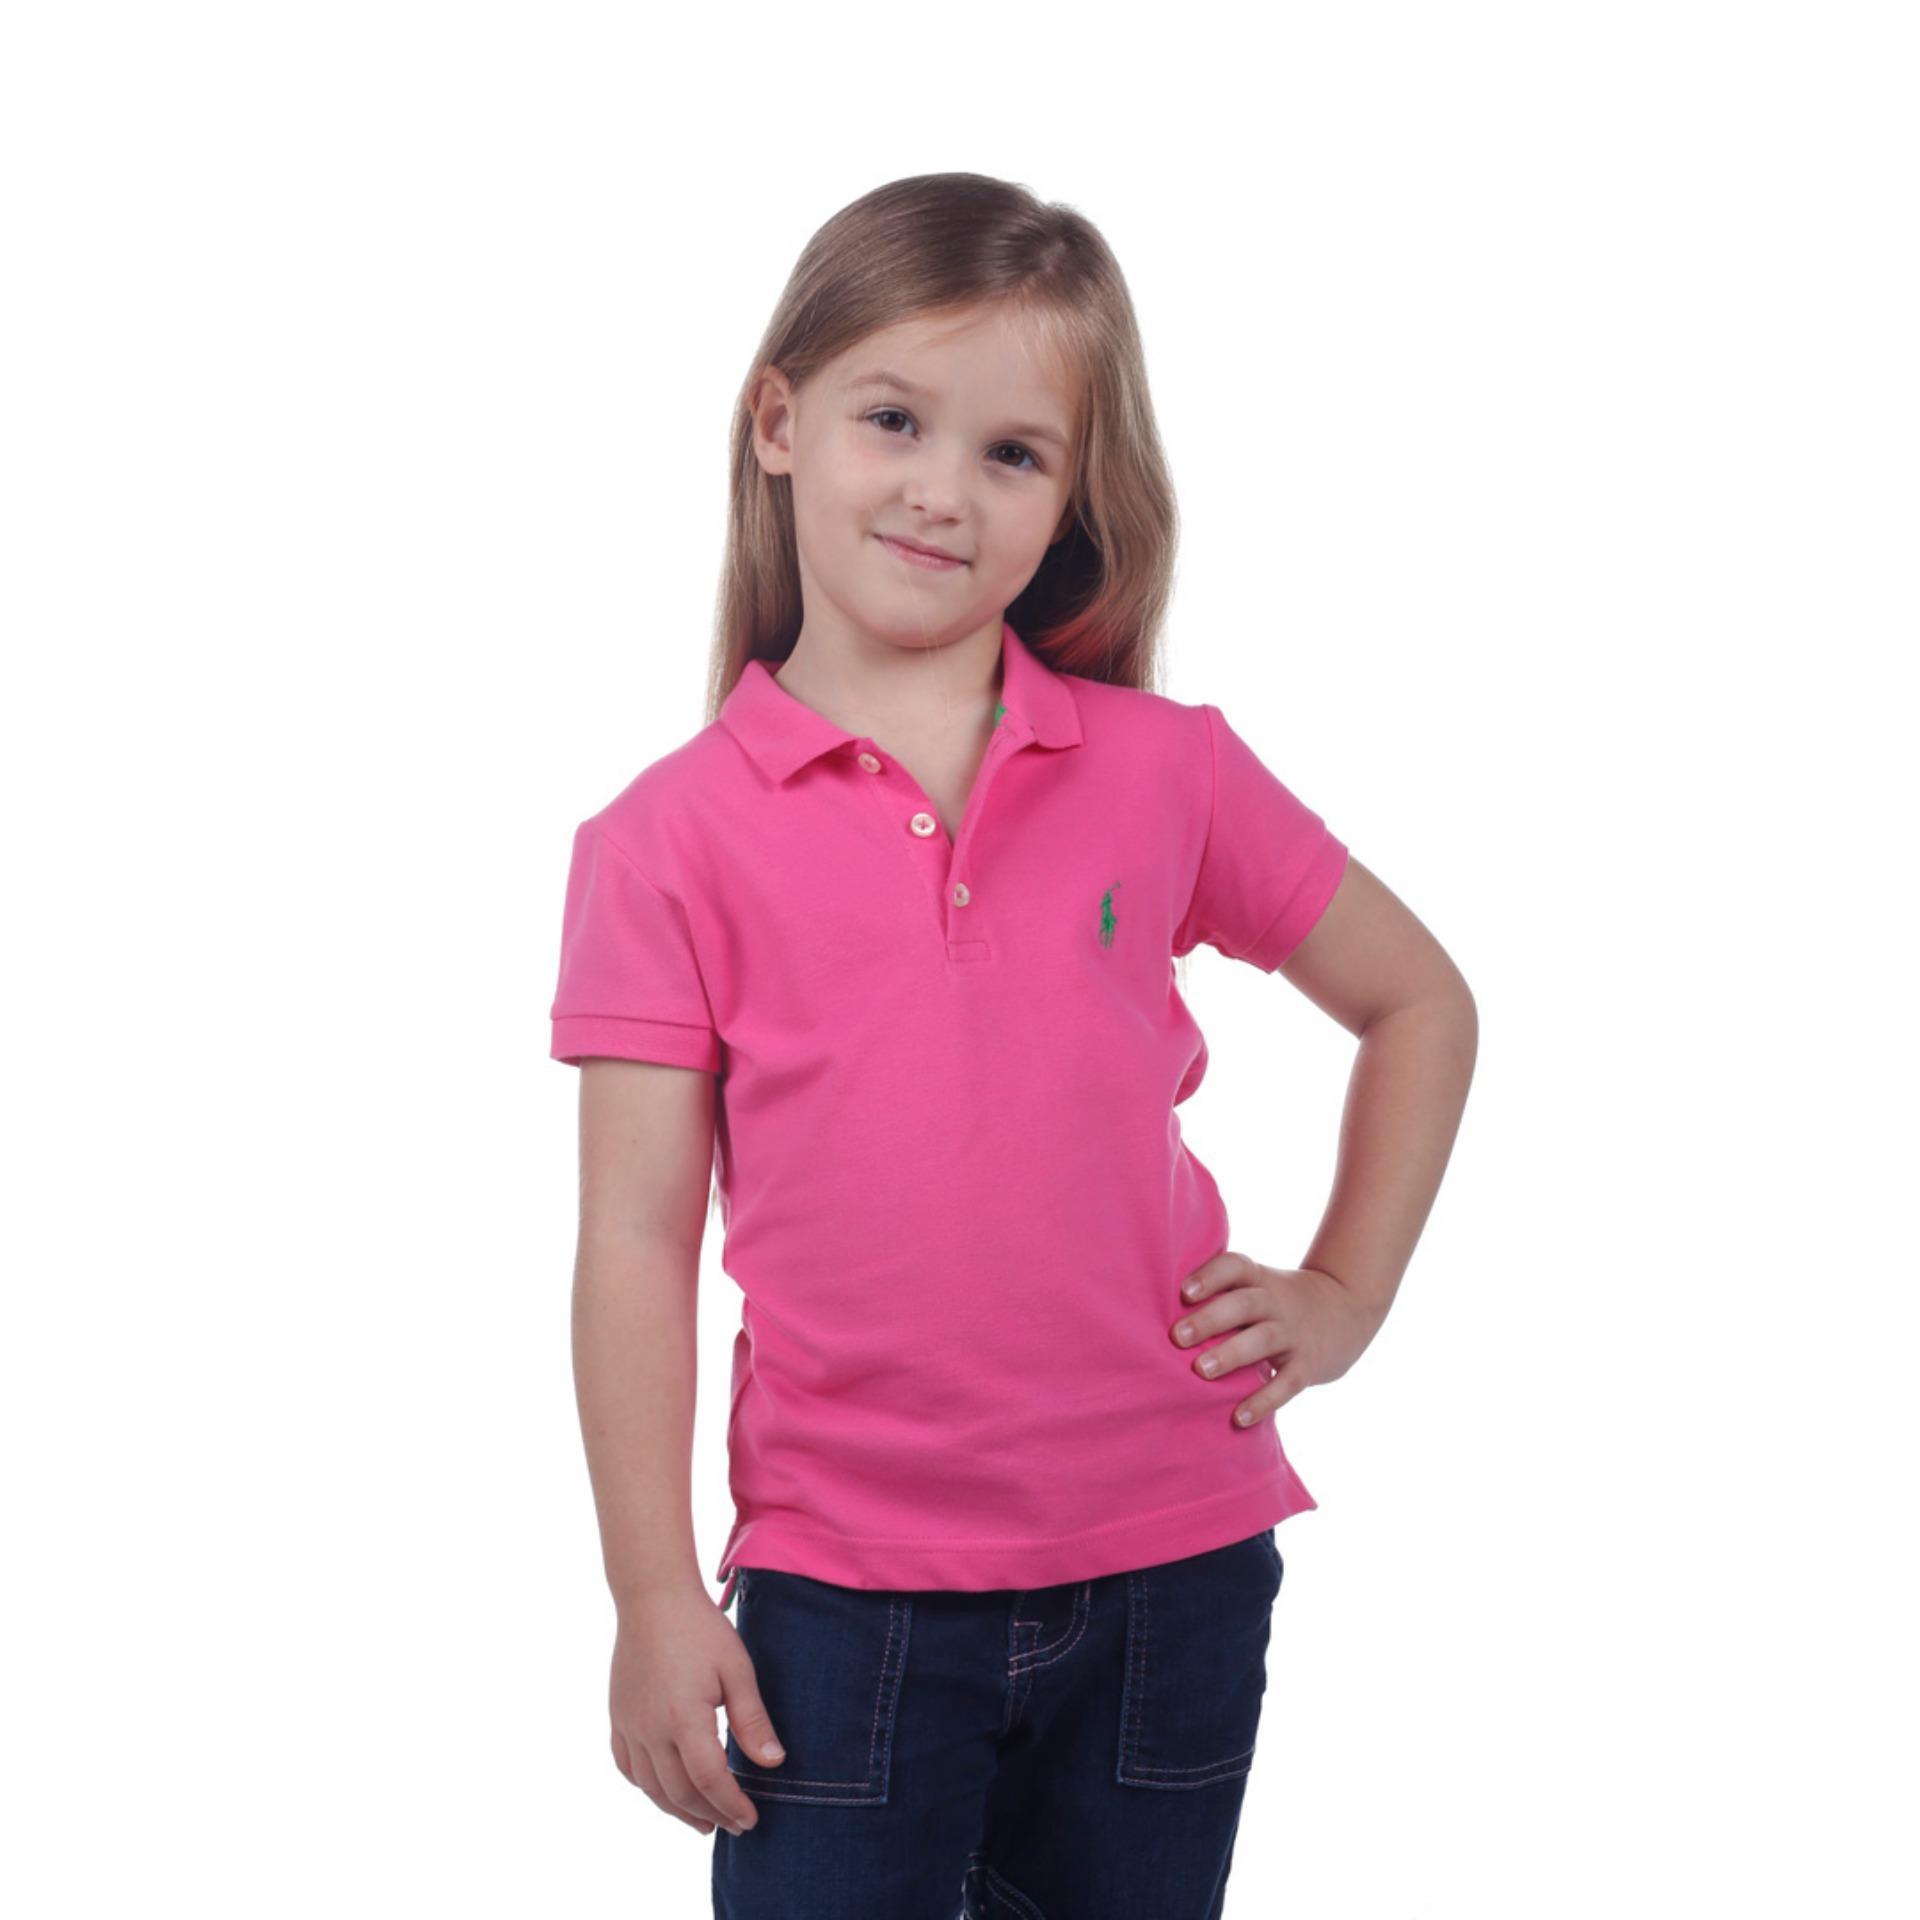 POLO RALPH LAUREN - POLO SHIRT CUSTOM FIT S/S Maui Pink KIDS GIRL